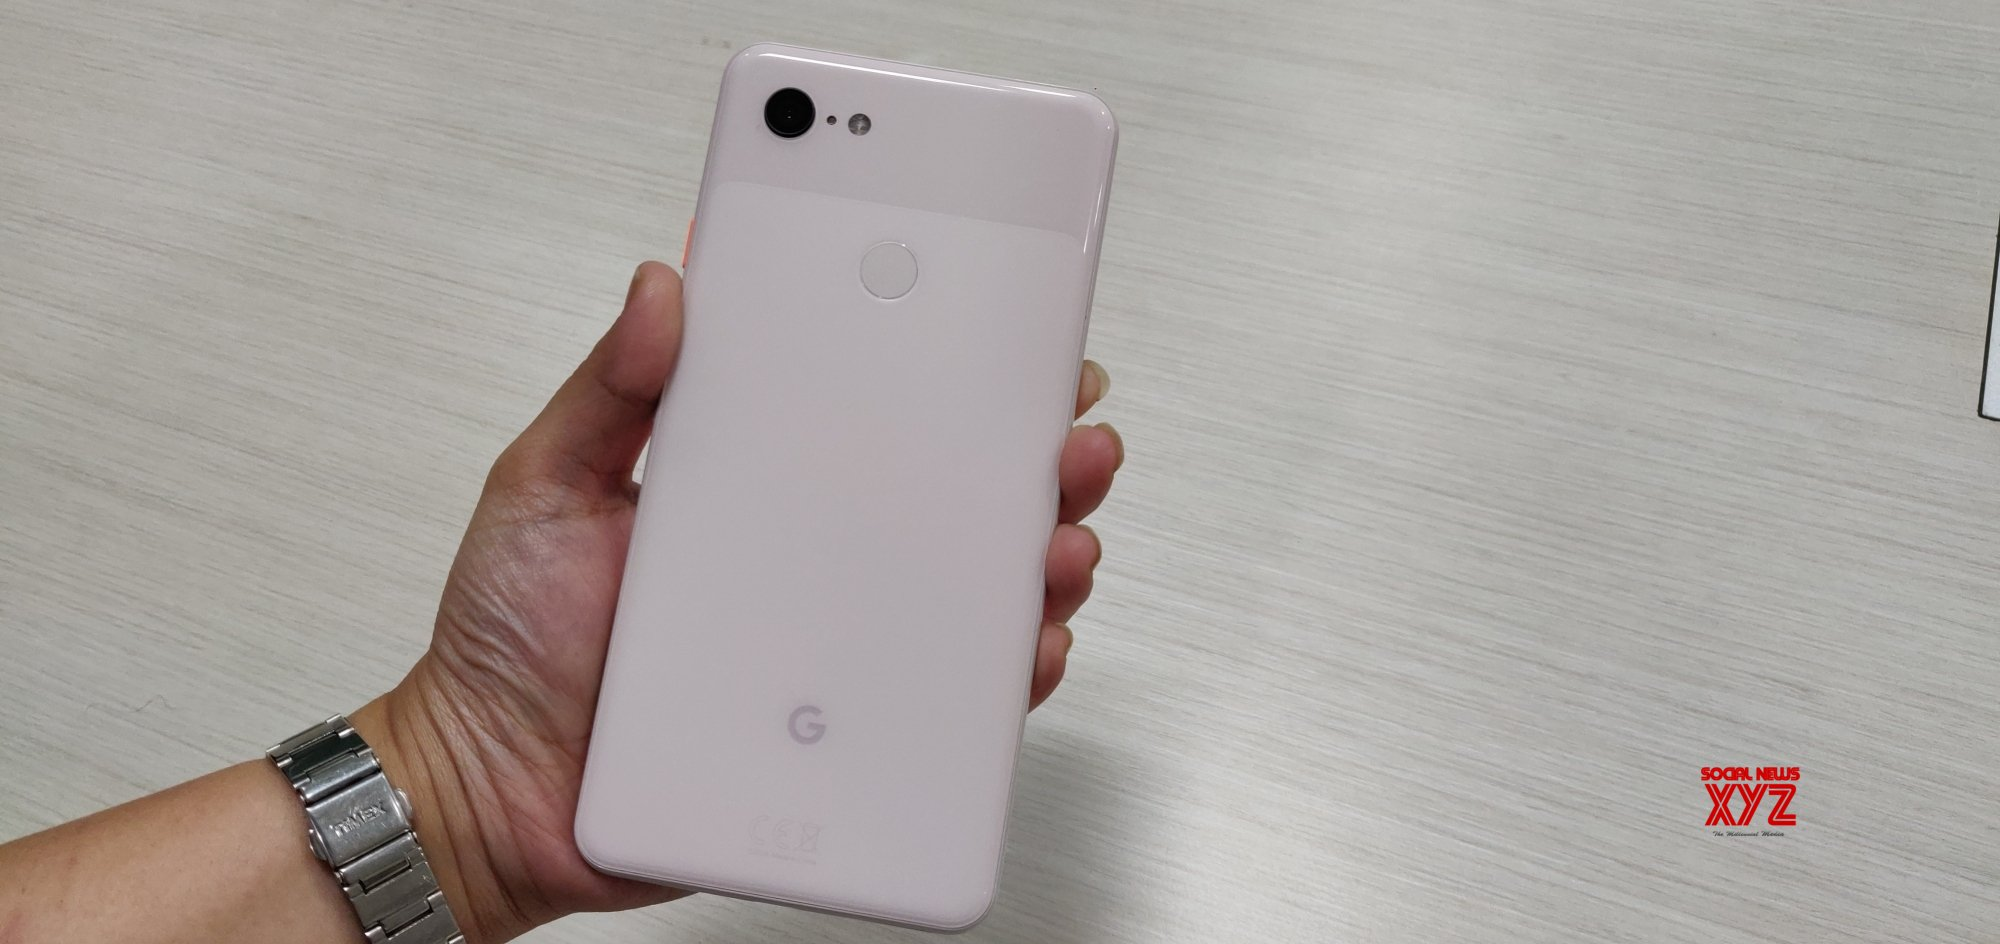 Google's Pixel 3a, 3a XL launch date revealed